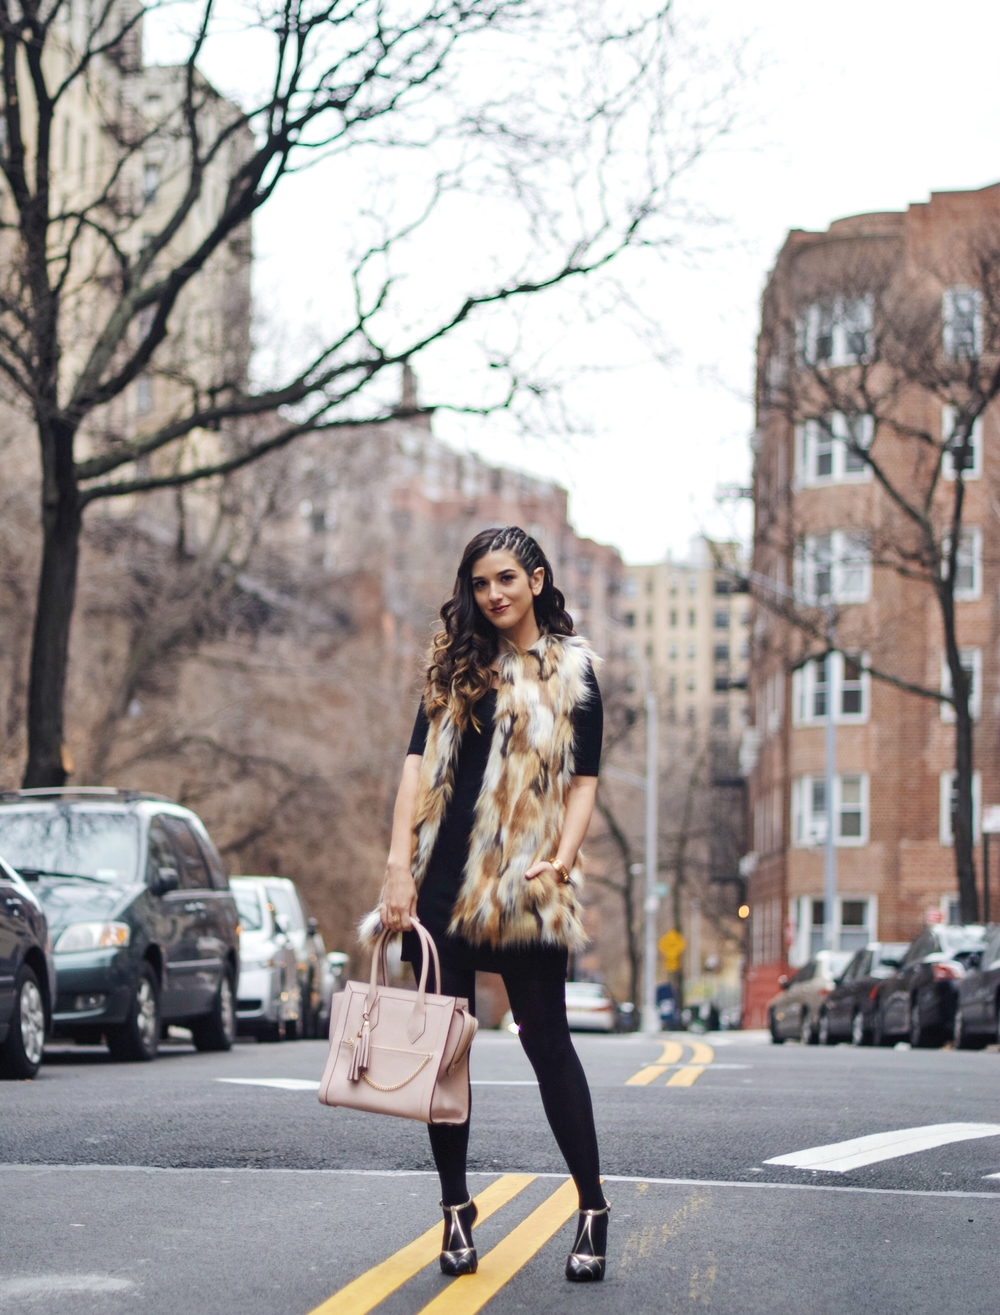 Calico Fur Henri Bendel Structured Leather Bag Louboutins & Love Fashion Blog Esther Santer NYC Street Style Blogger Zara Gold Jewelry Bracelet Pink Purse Vest Hair Inspo Outfit OOTD Cornrows LBD Black Dress Heels Shoes Women Girl Fall Winter Shopping.jpg